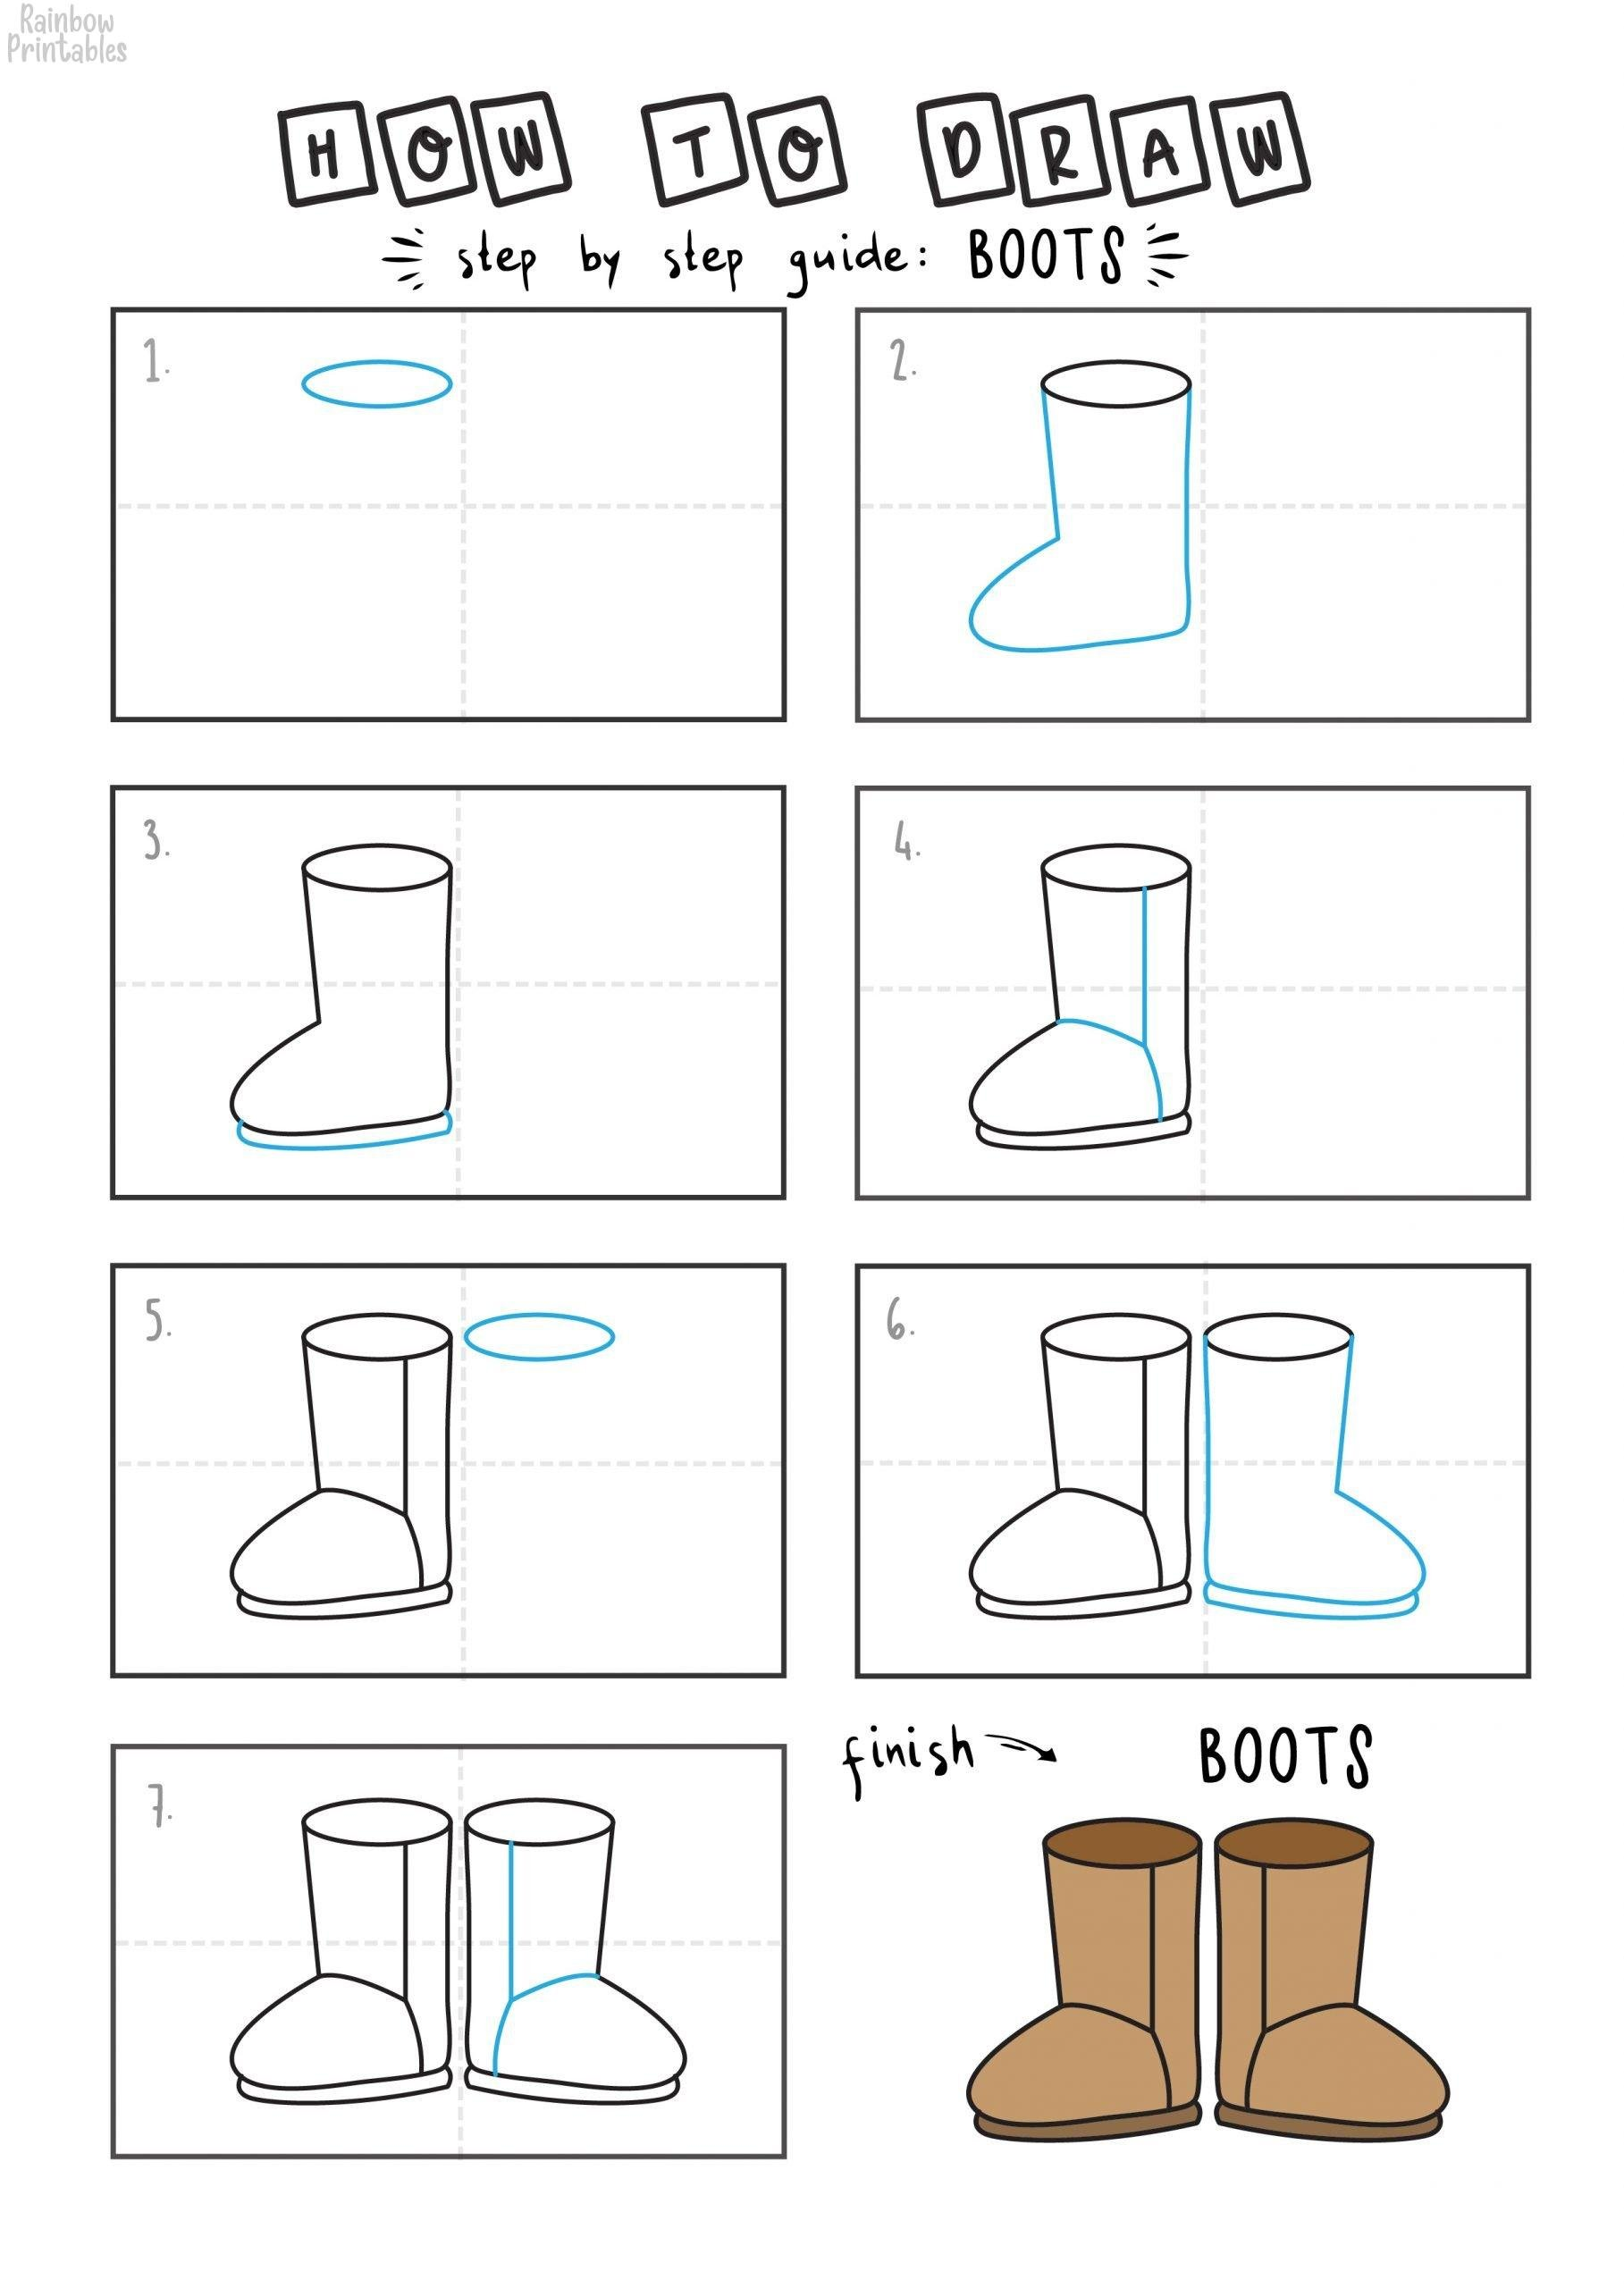 HOW TO DRAW UGG BOOT FOR YOUNG KIDS EASY DRAWINGS ART GUIDE STEP BY STEP